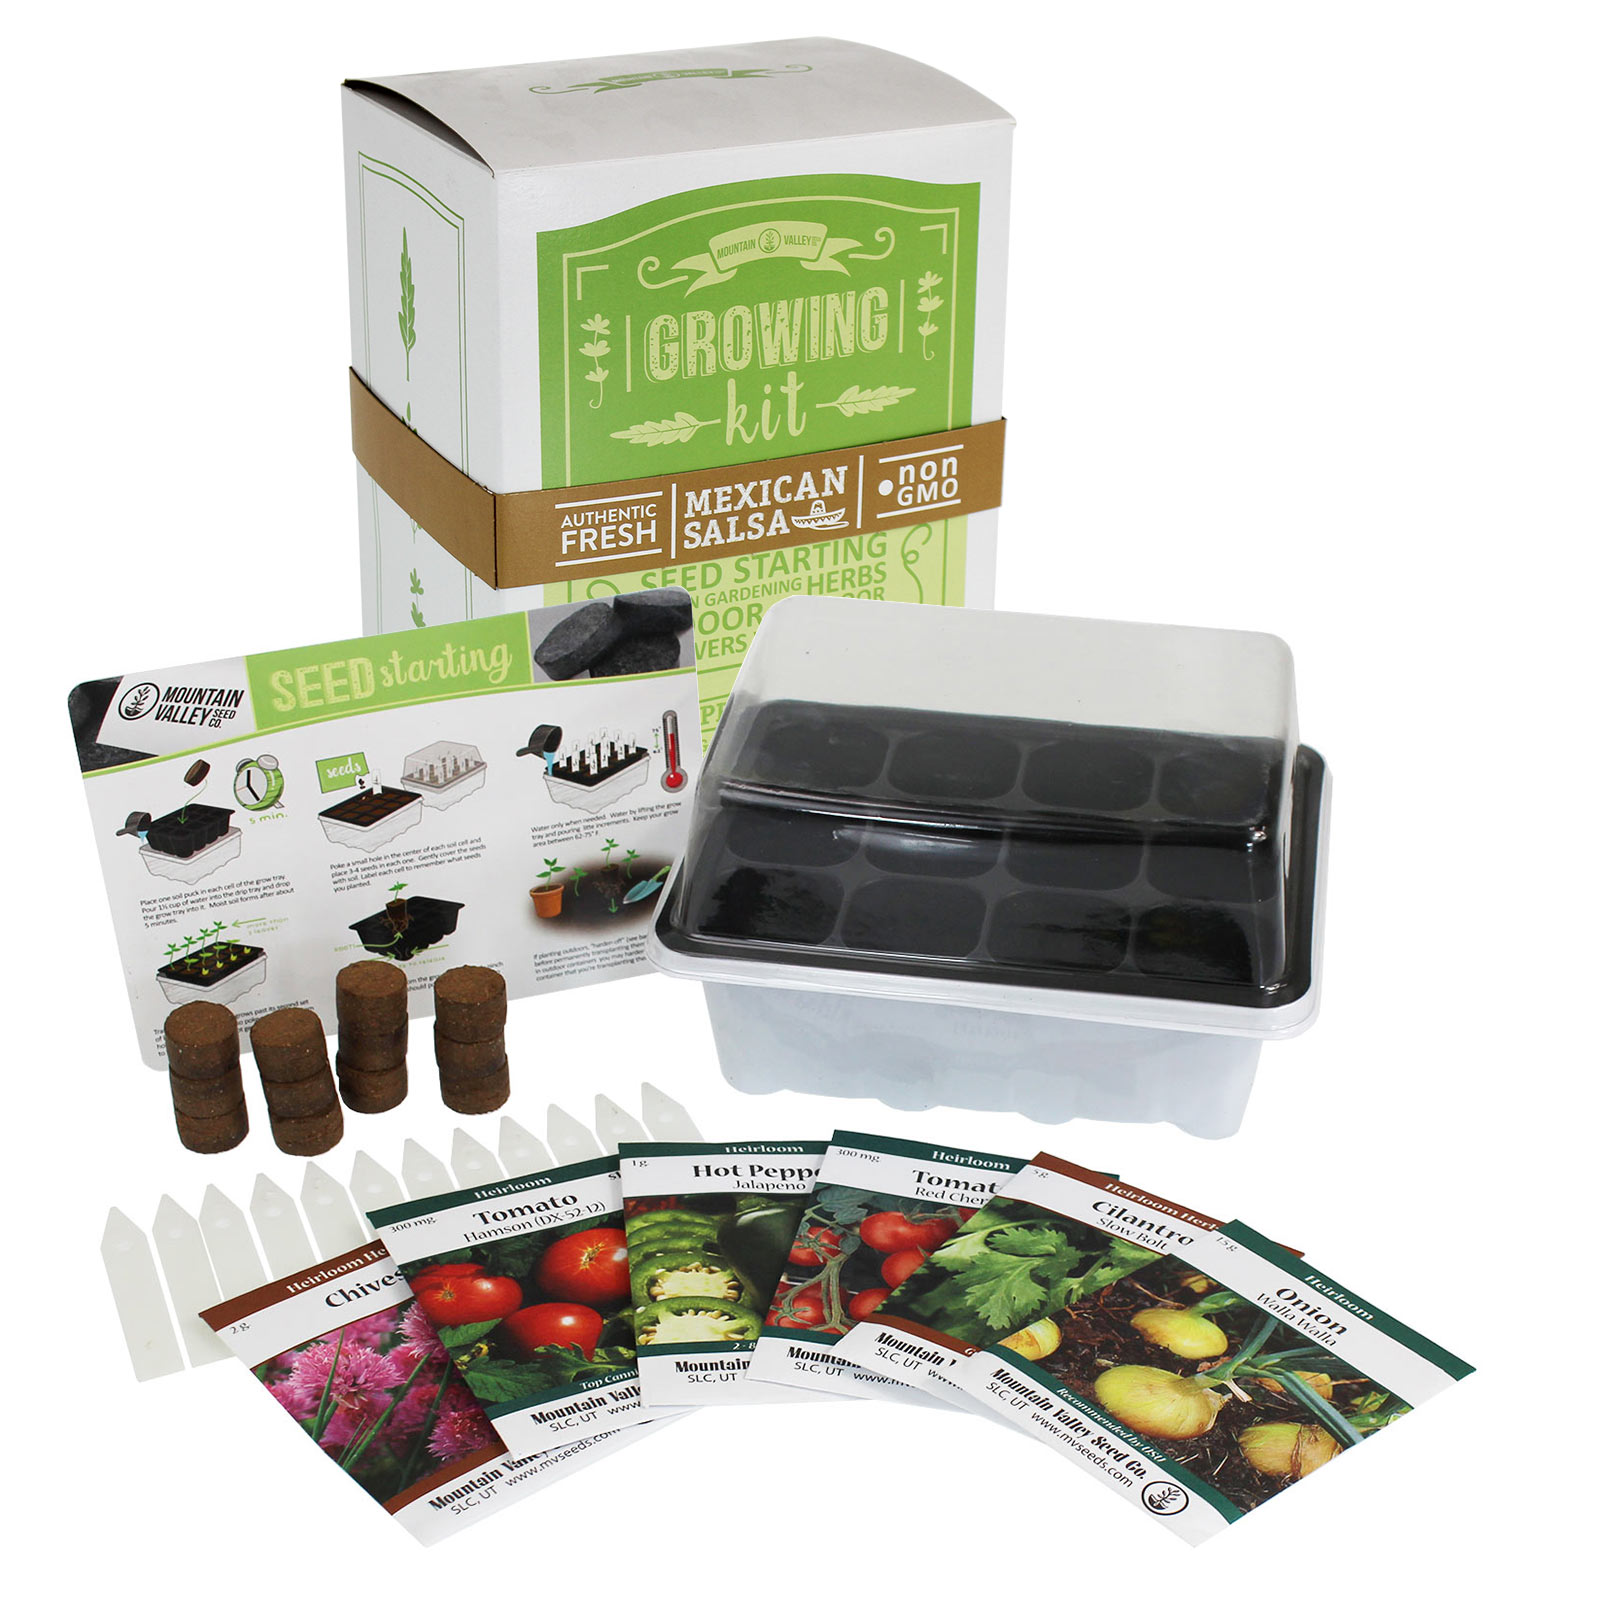 Premium Seed Starter Kit - MEXICAN SALSA